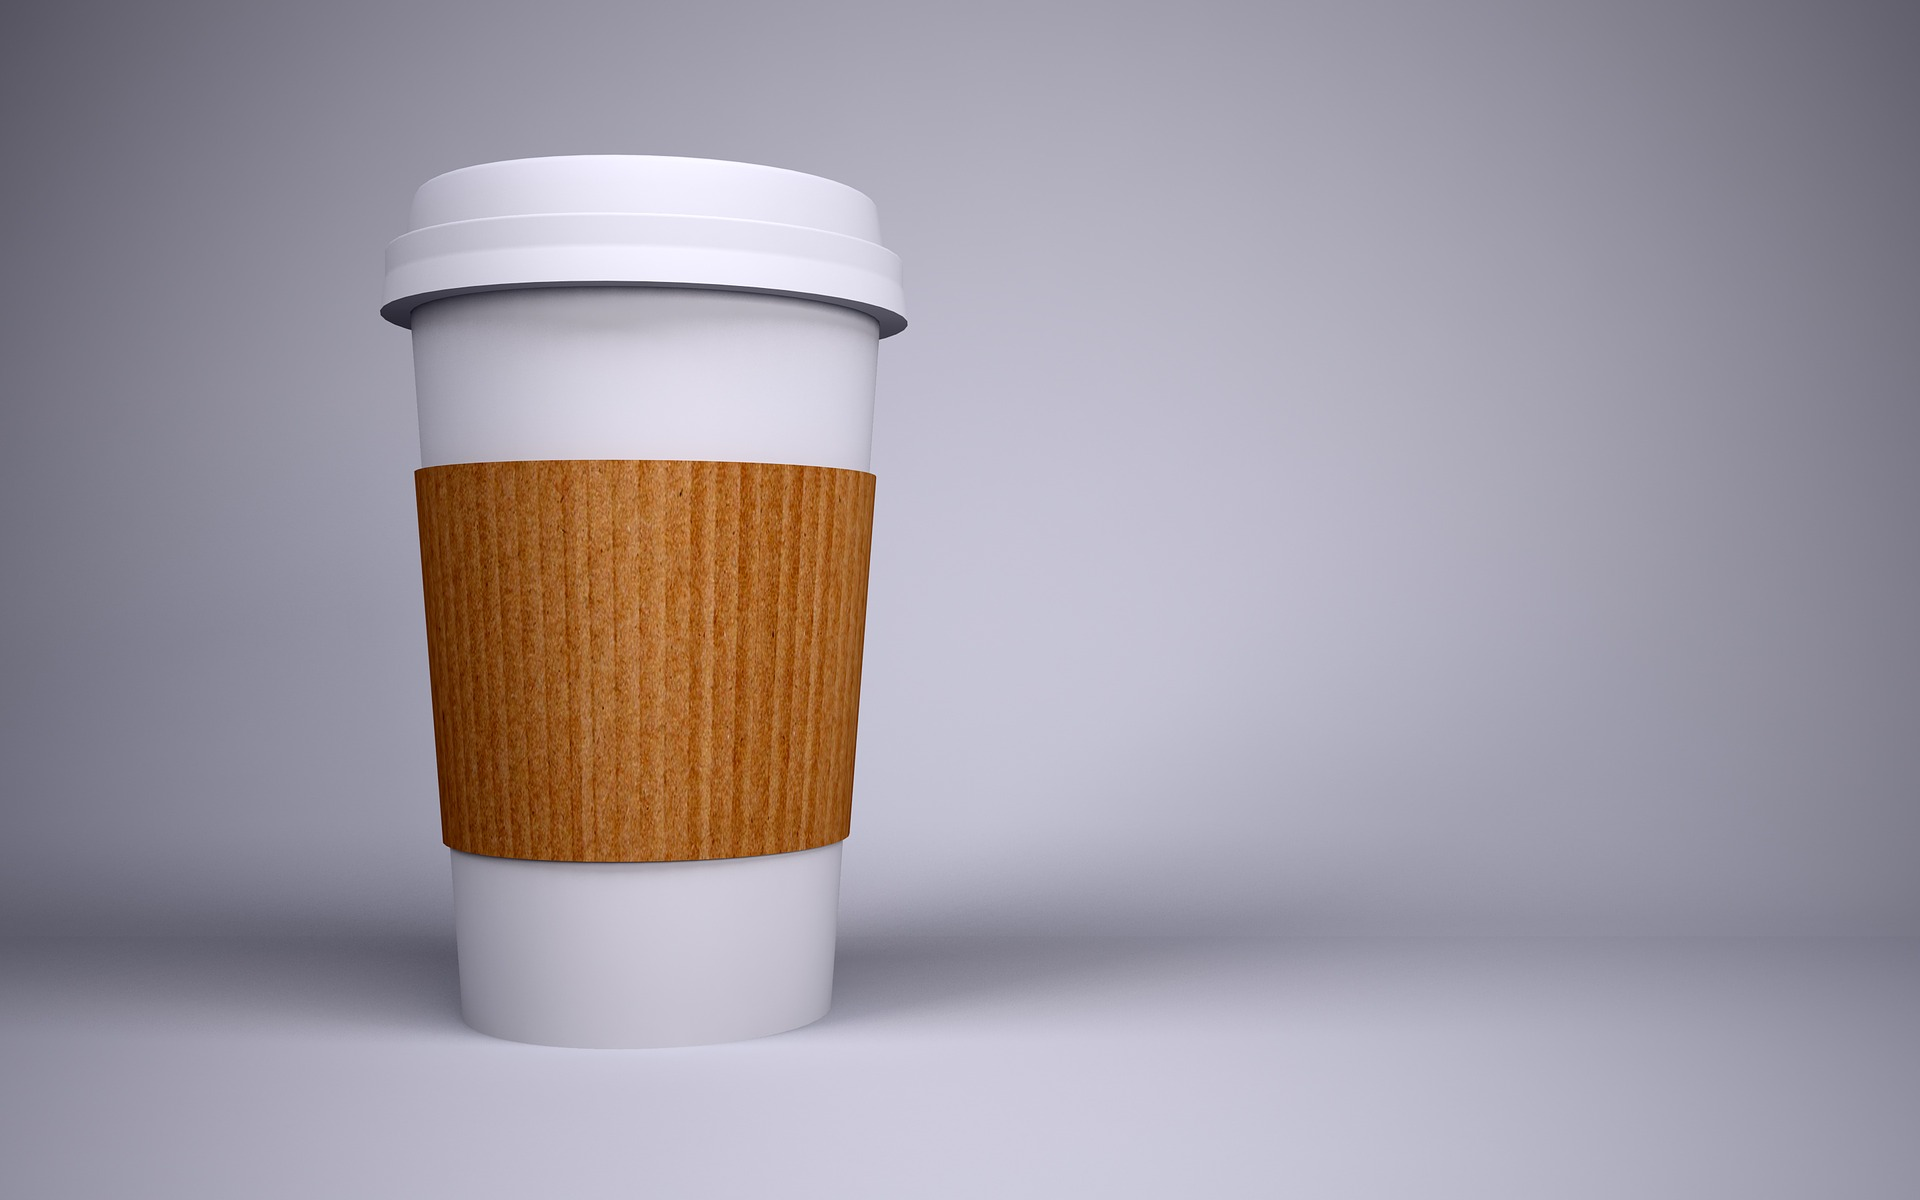 DS Smith partners with Royal Mail to start 'Coffee Cup Drop Box'